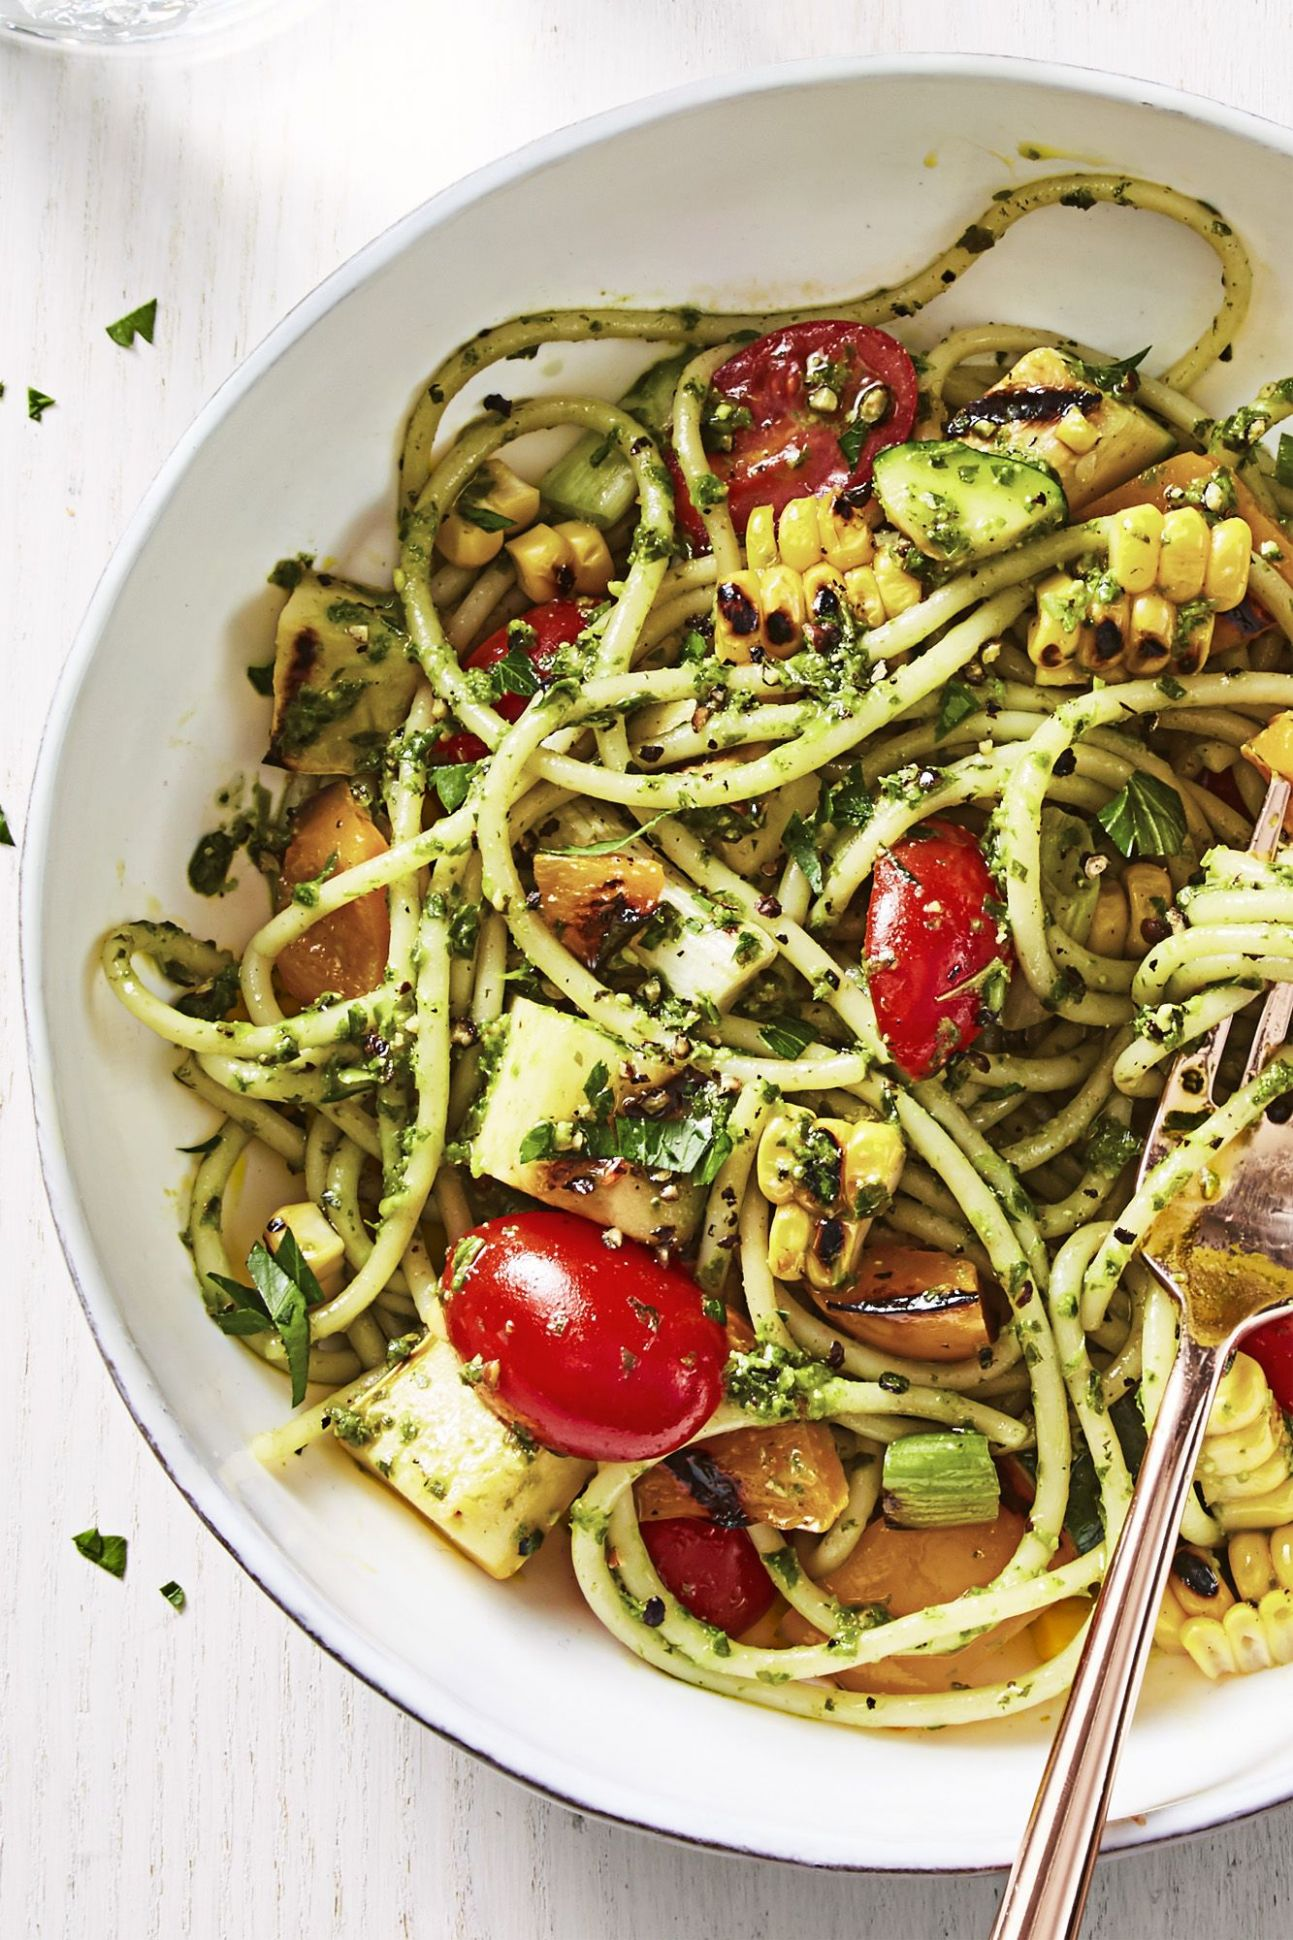 Summer Pesto Pasta - Summer Recipes Good Housekeeping